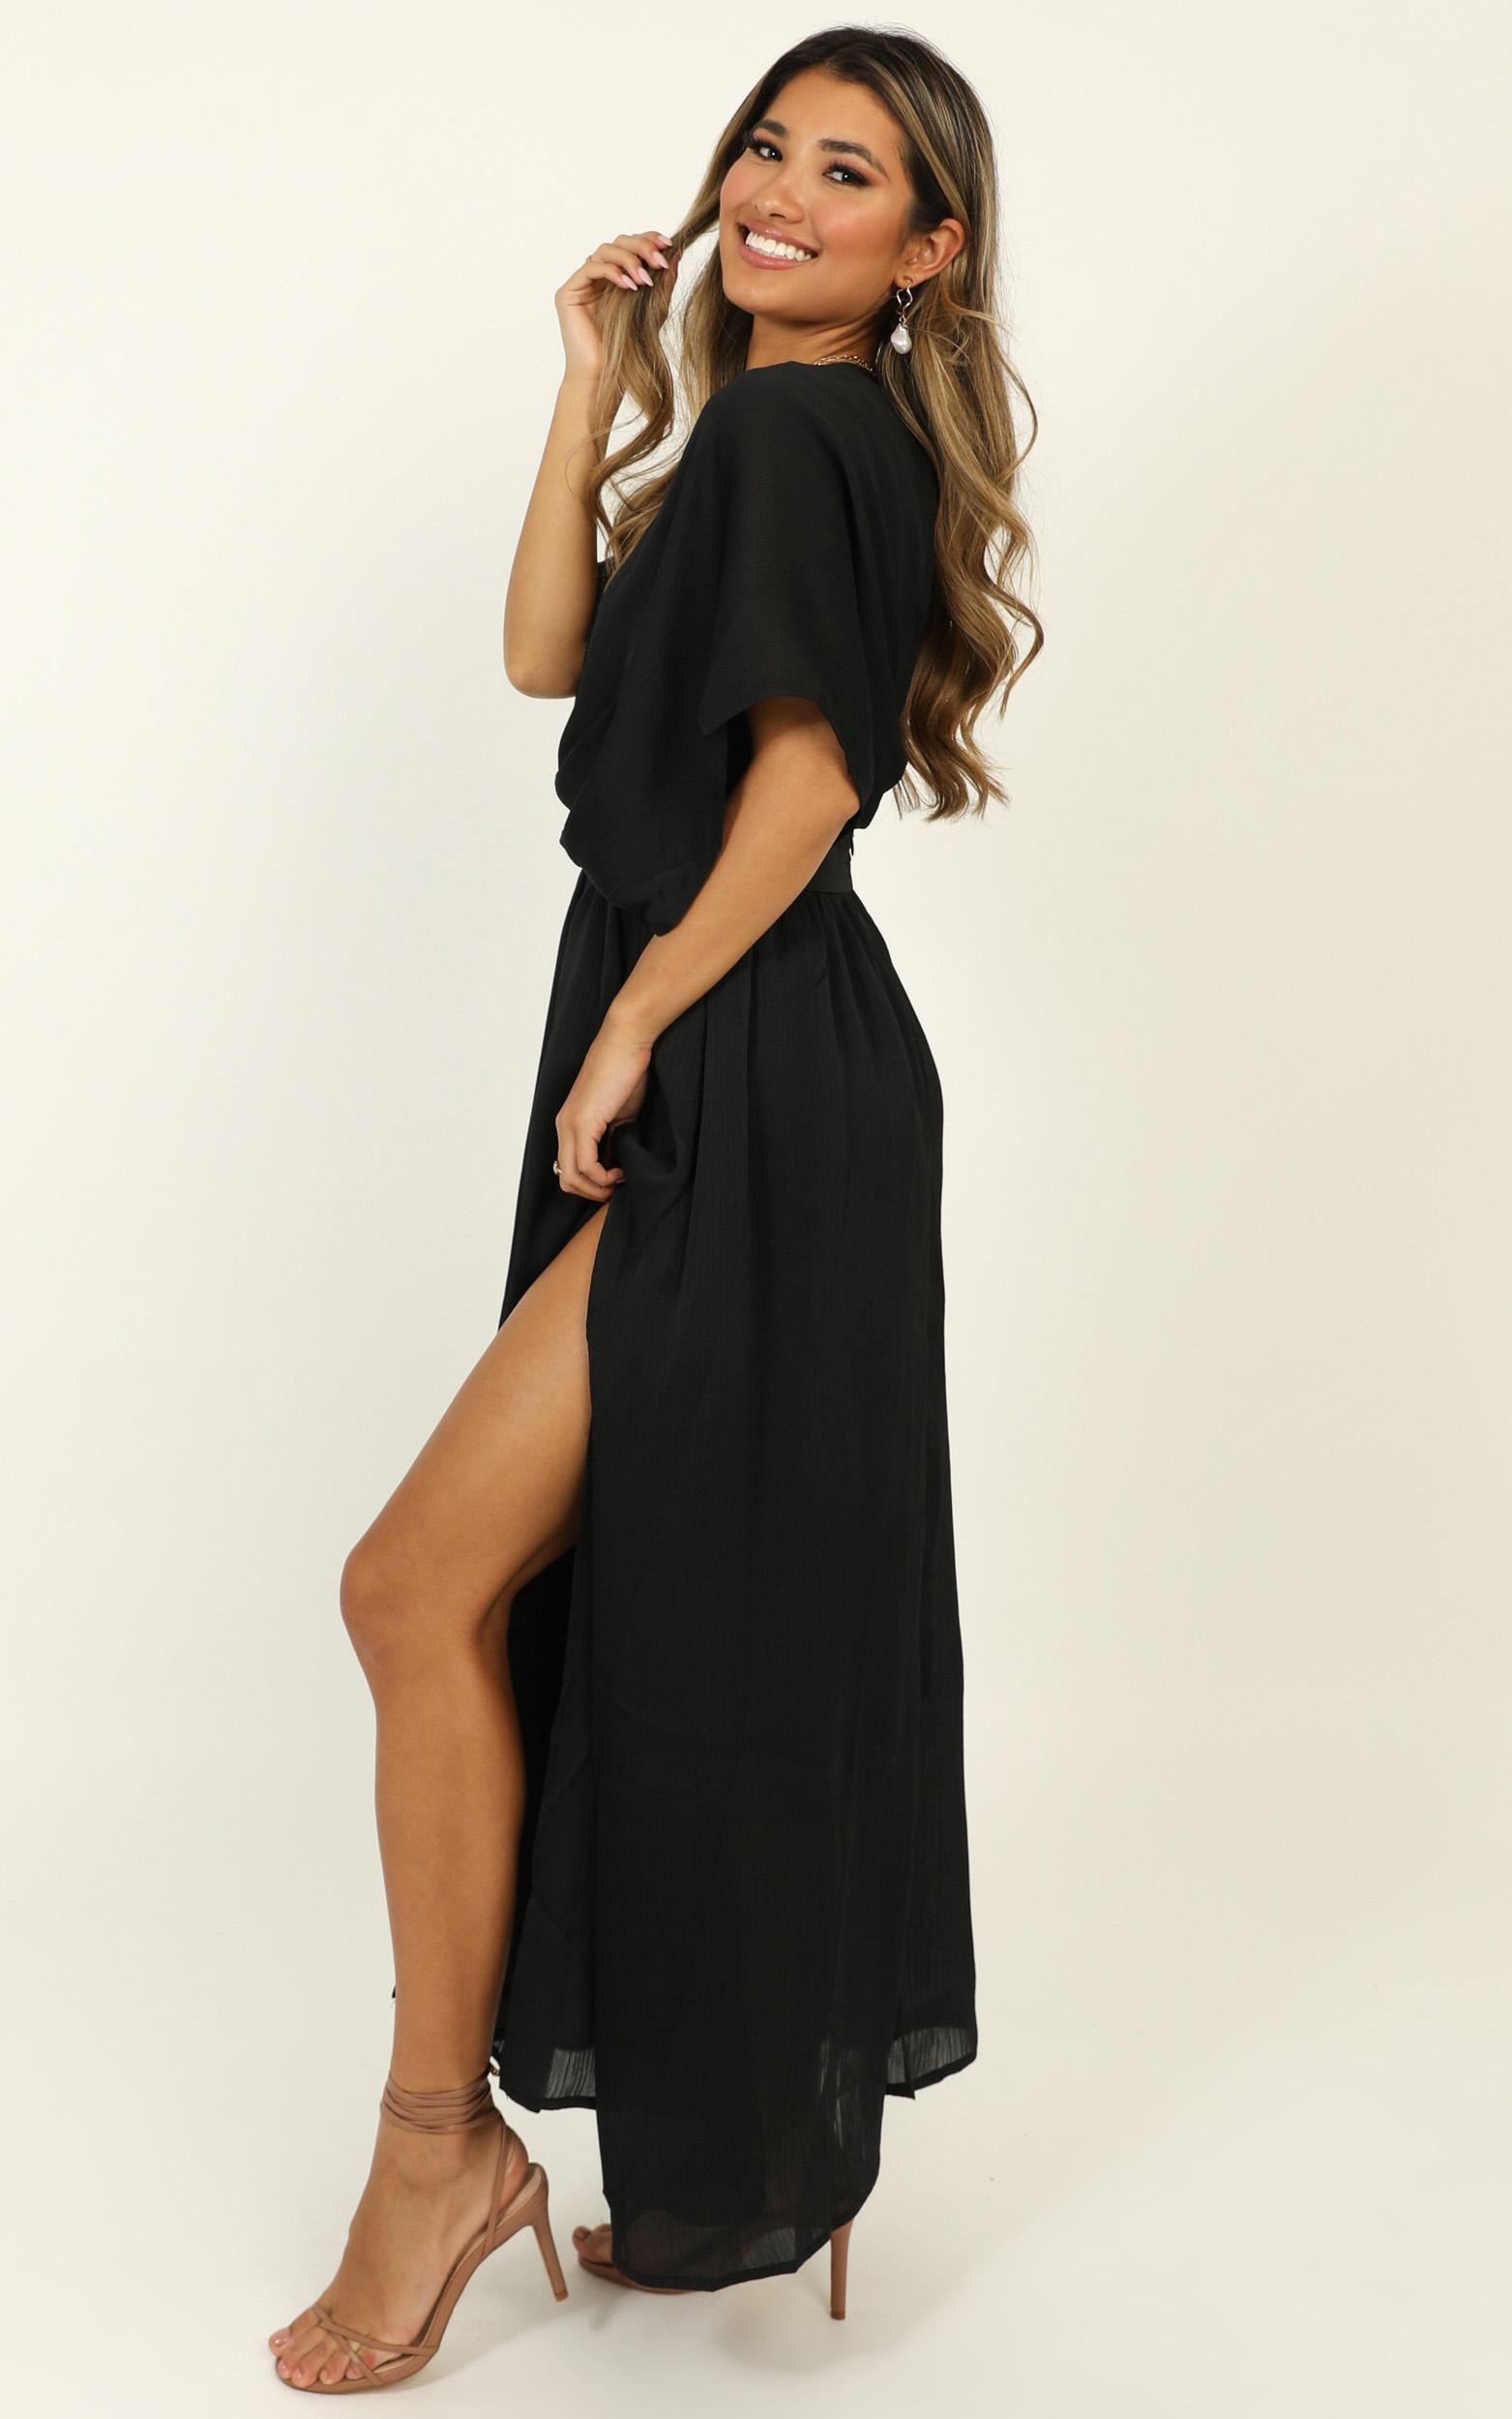 Save It For Later Dress In black satin - 14 (XL), Black, hi-res image number null